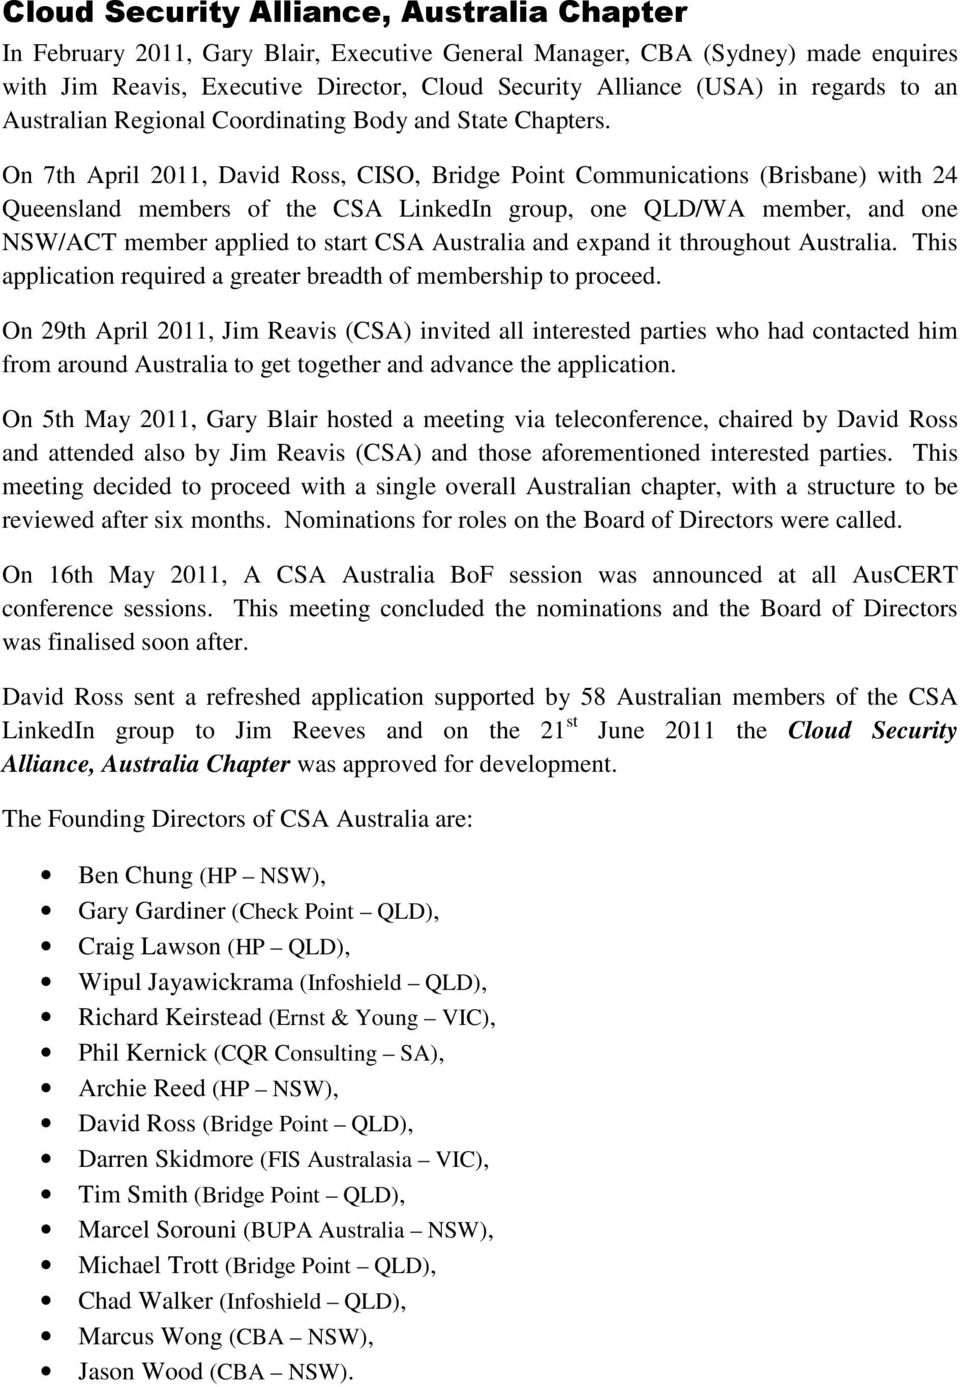 On 7th April 2011, David Ross, CISO, Bridge Point Communications (Brisbane) with 24 Queensland members of the CSA LinkedIn group, one QLD/WA member, and one NSW/ACT member applied to start CSA